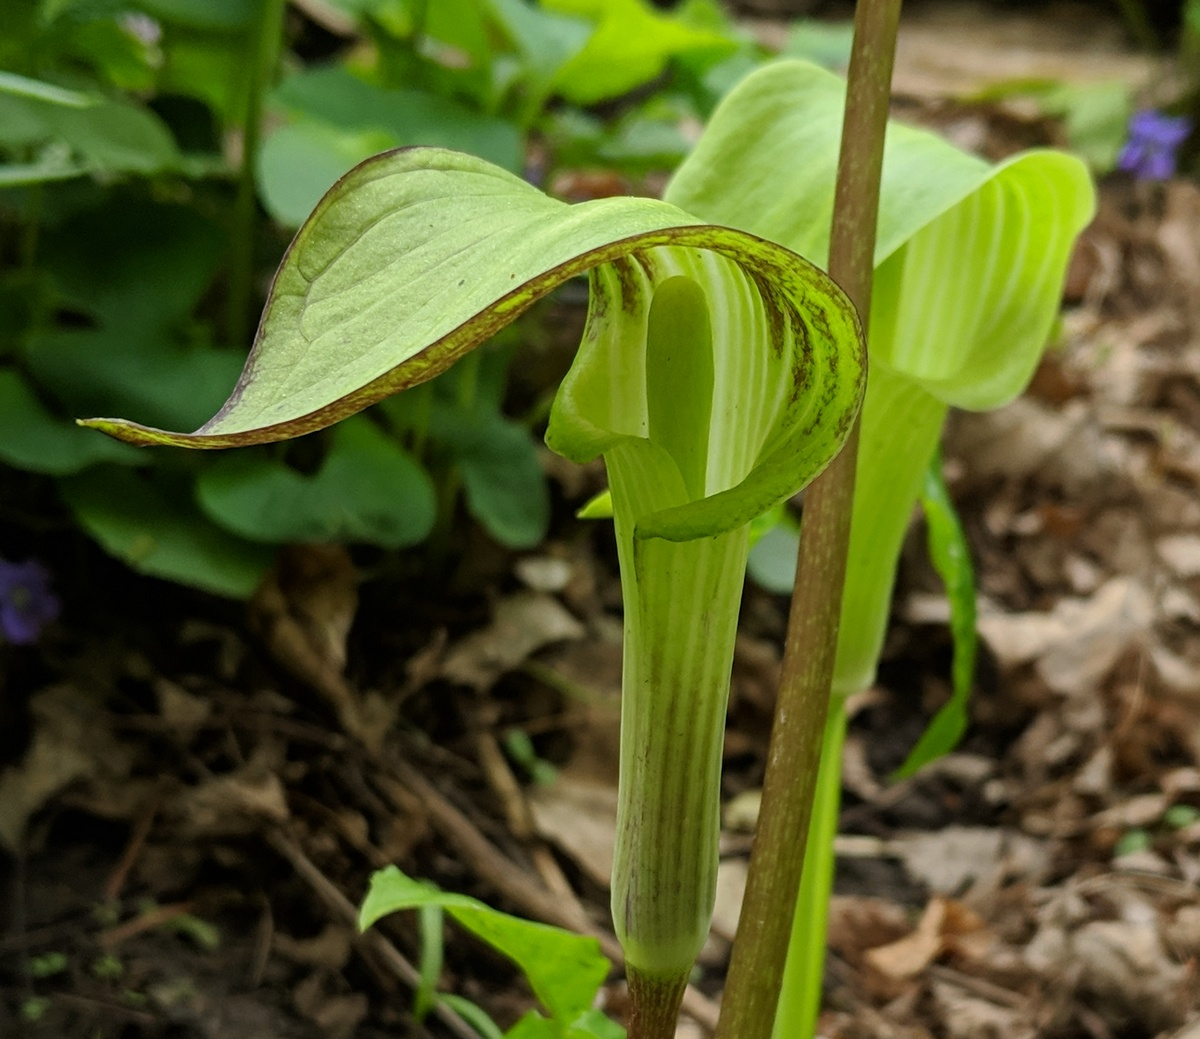 closeup of a green flower with its spathe swooshing out in front